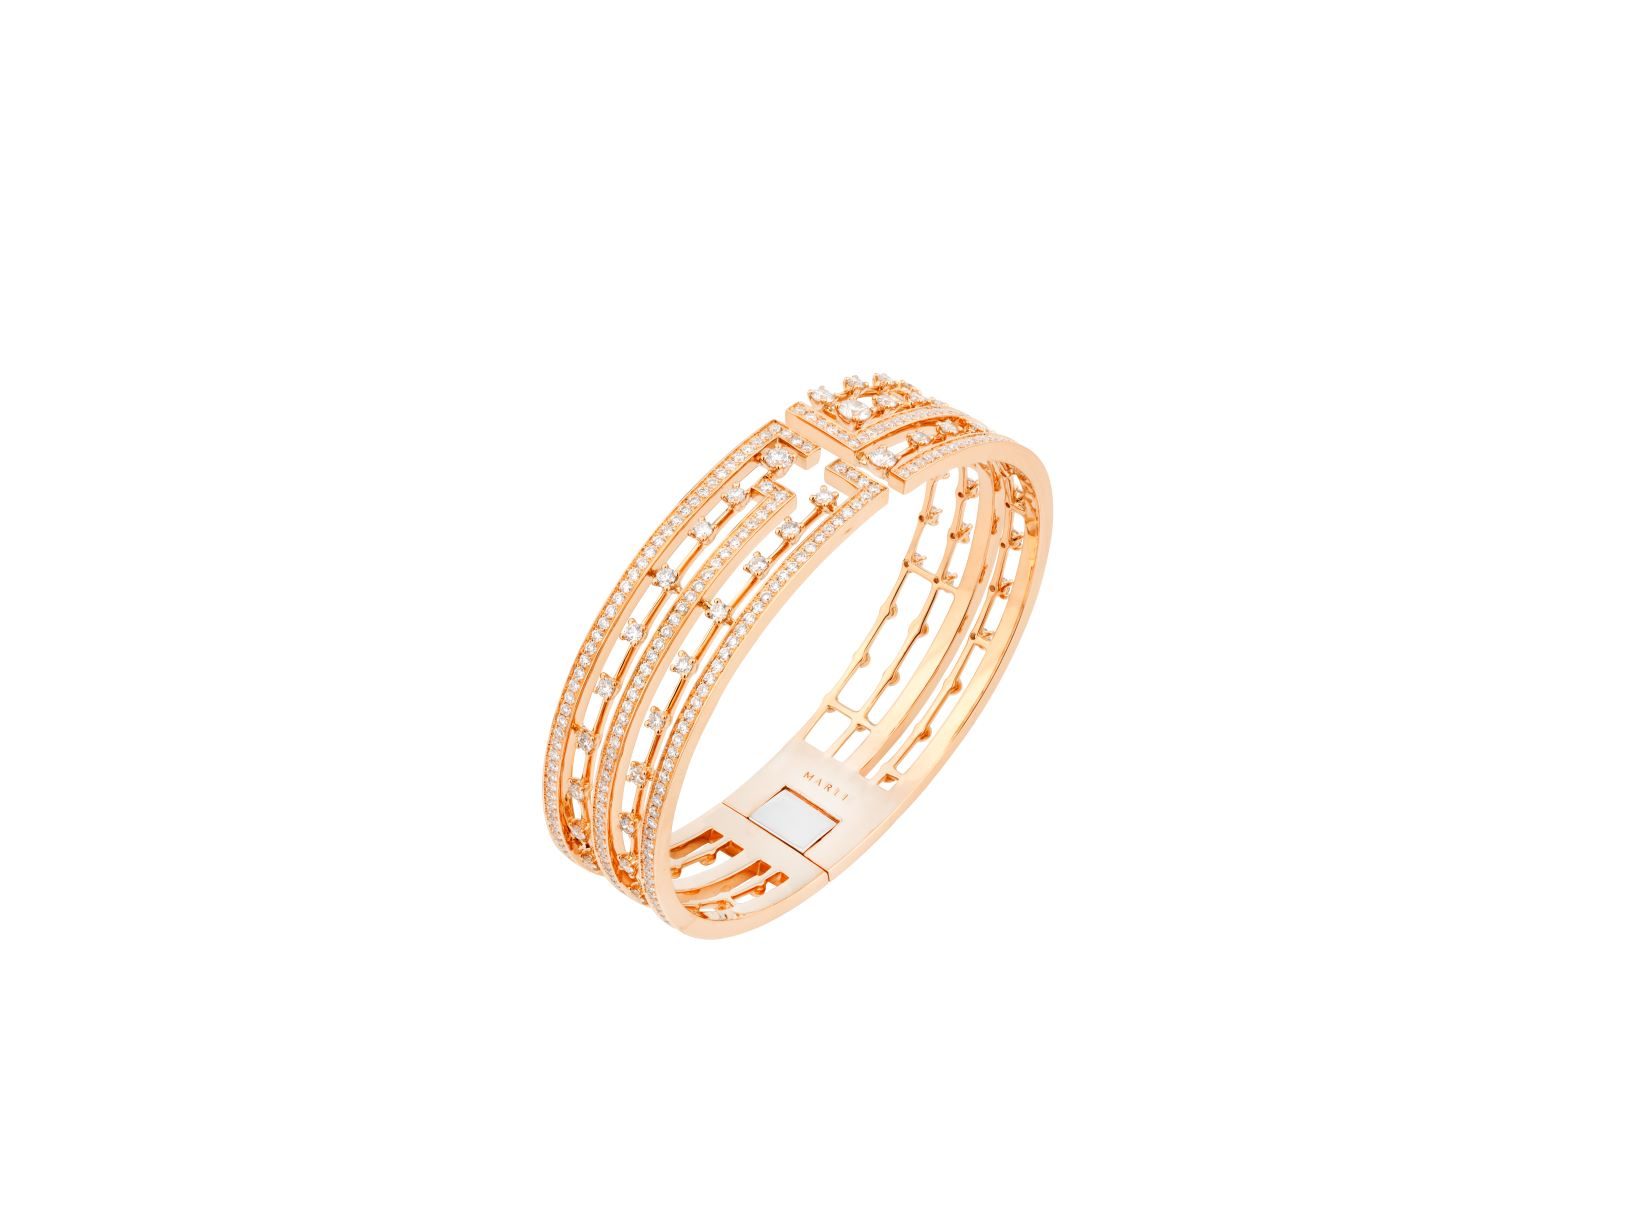 Avenues Statement Hinged Bracelet